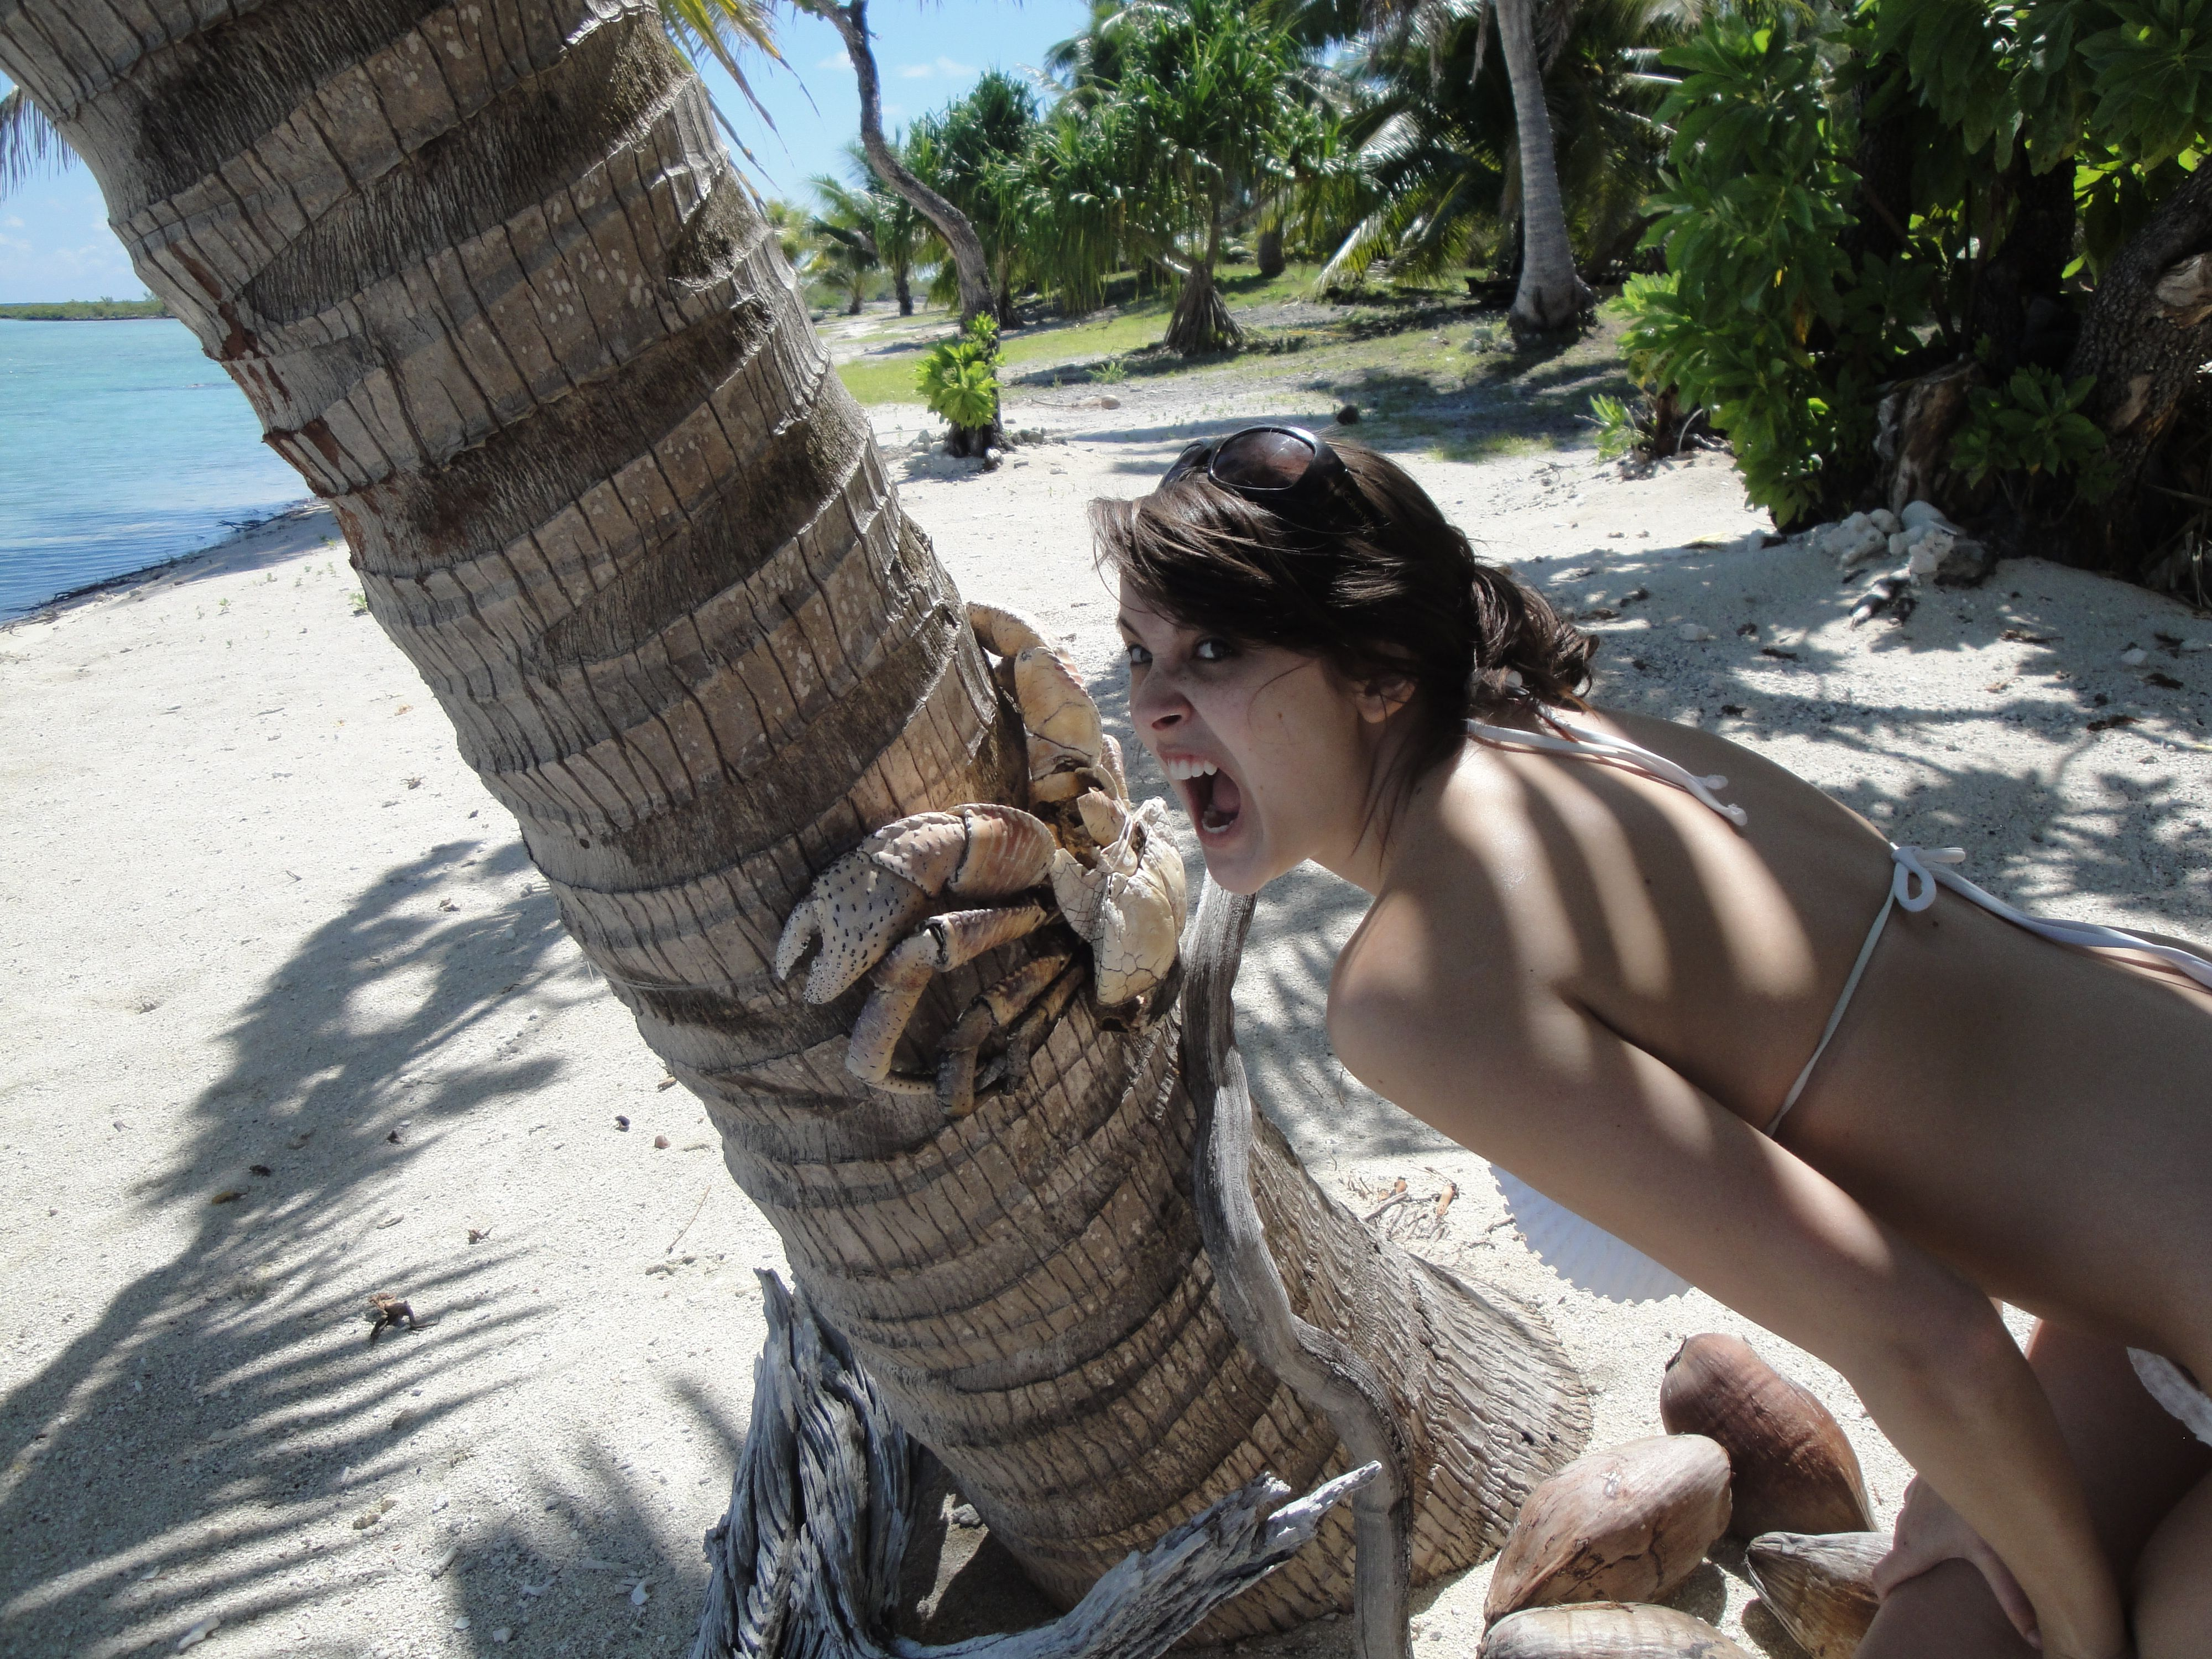 Coconut crab yahoo image search results projects for Do you have to buy land in alaska